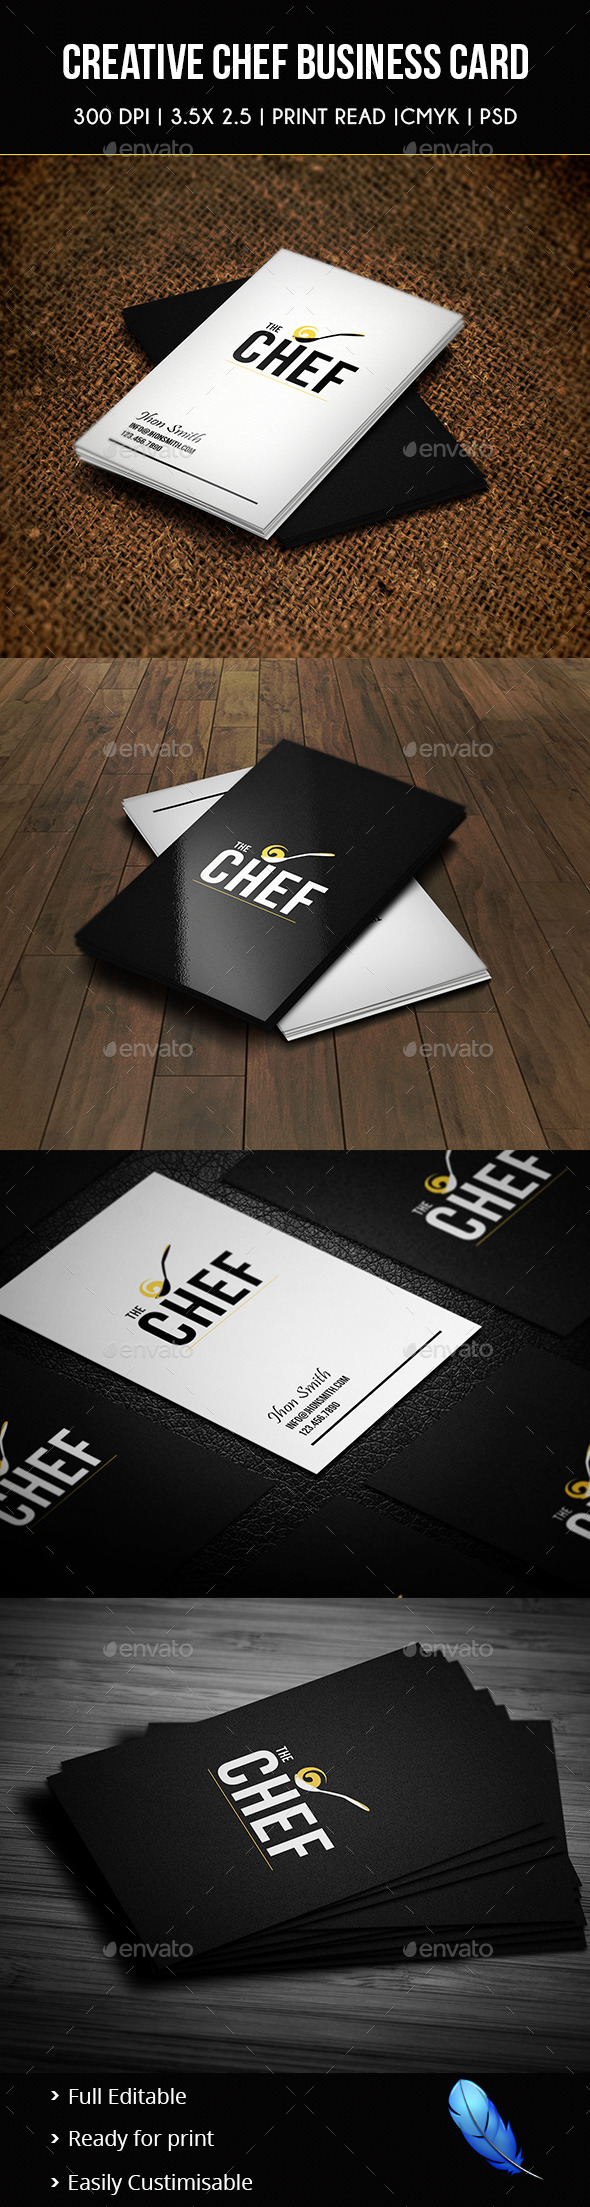 Creative Chef Business Card 02 by Awns | GraphicRiver